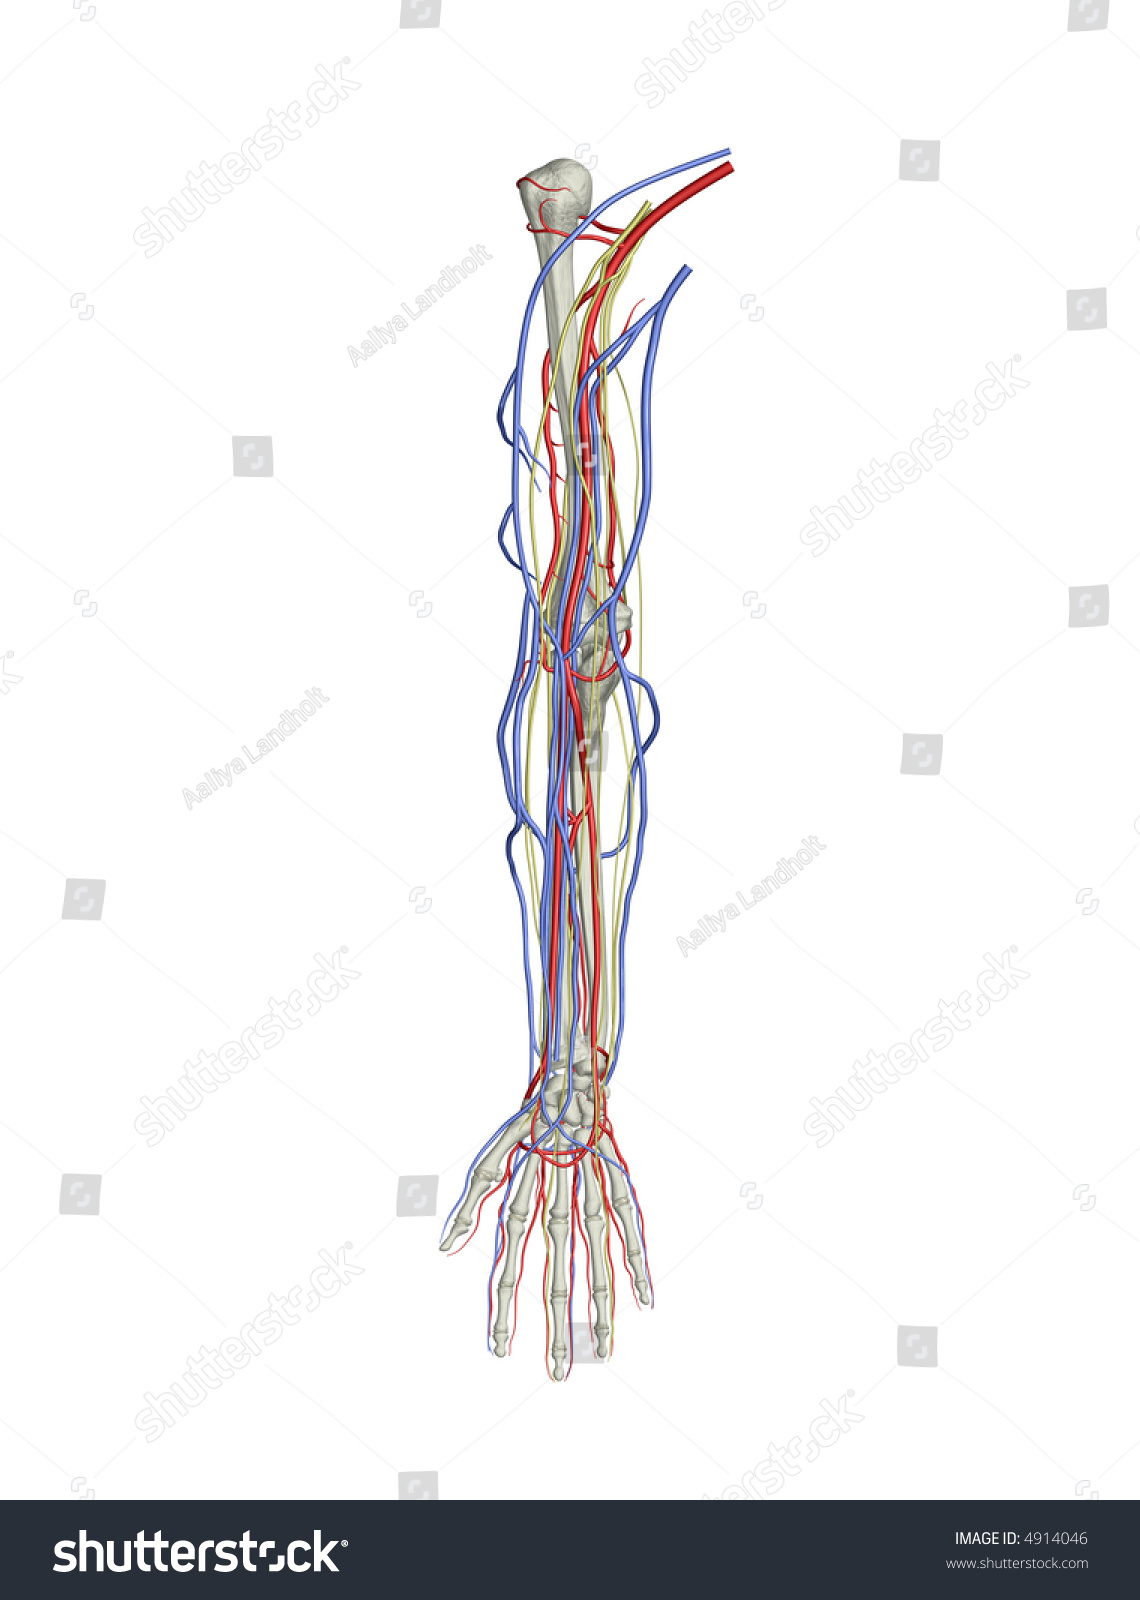 Arm Bones Arteries Veins Nerves Stock Illustration Royalty Free